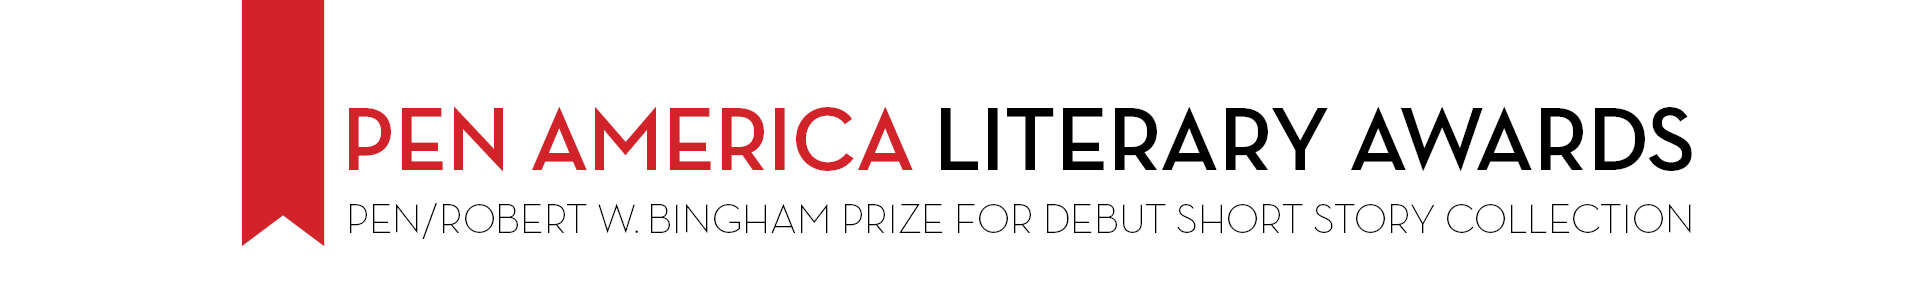 PEN America Literary Awards PEN/Bingham Prize for Debut Short Story Collection